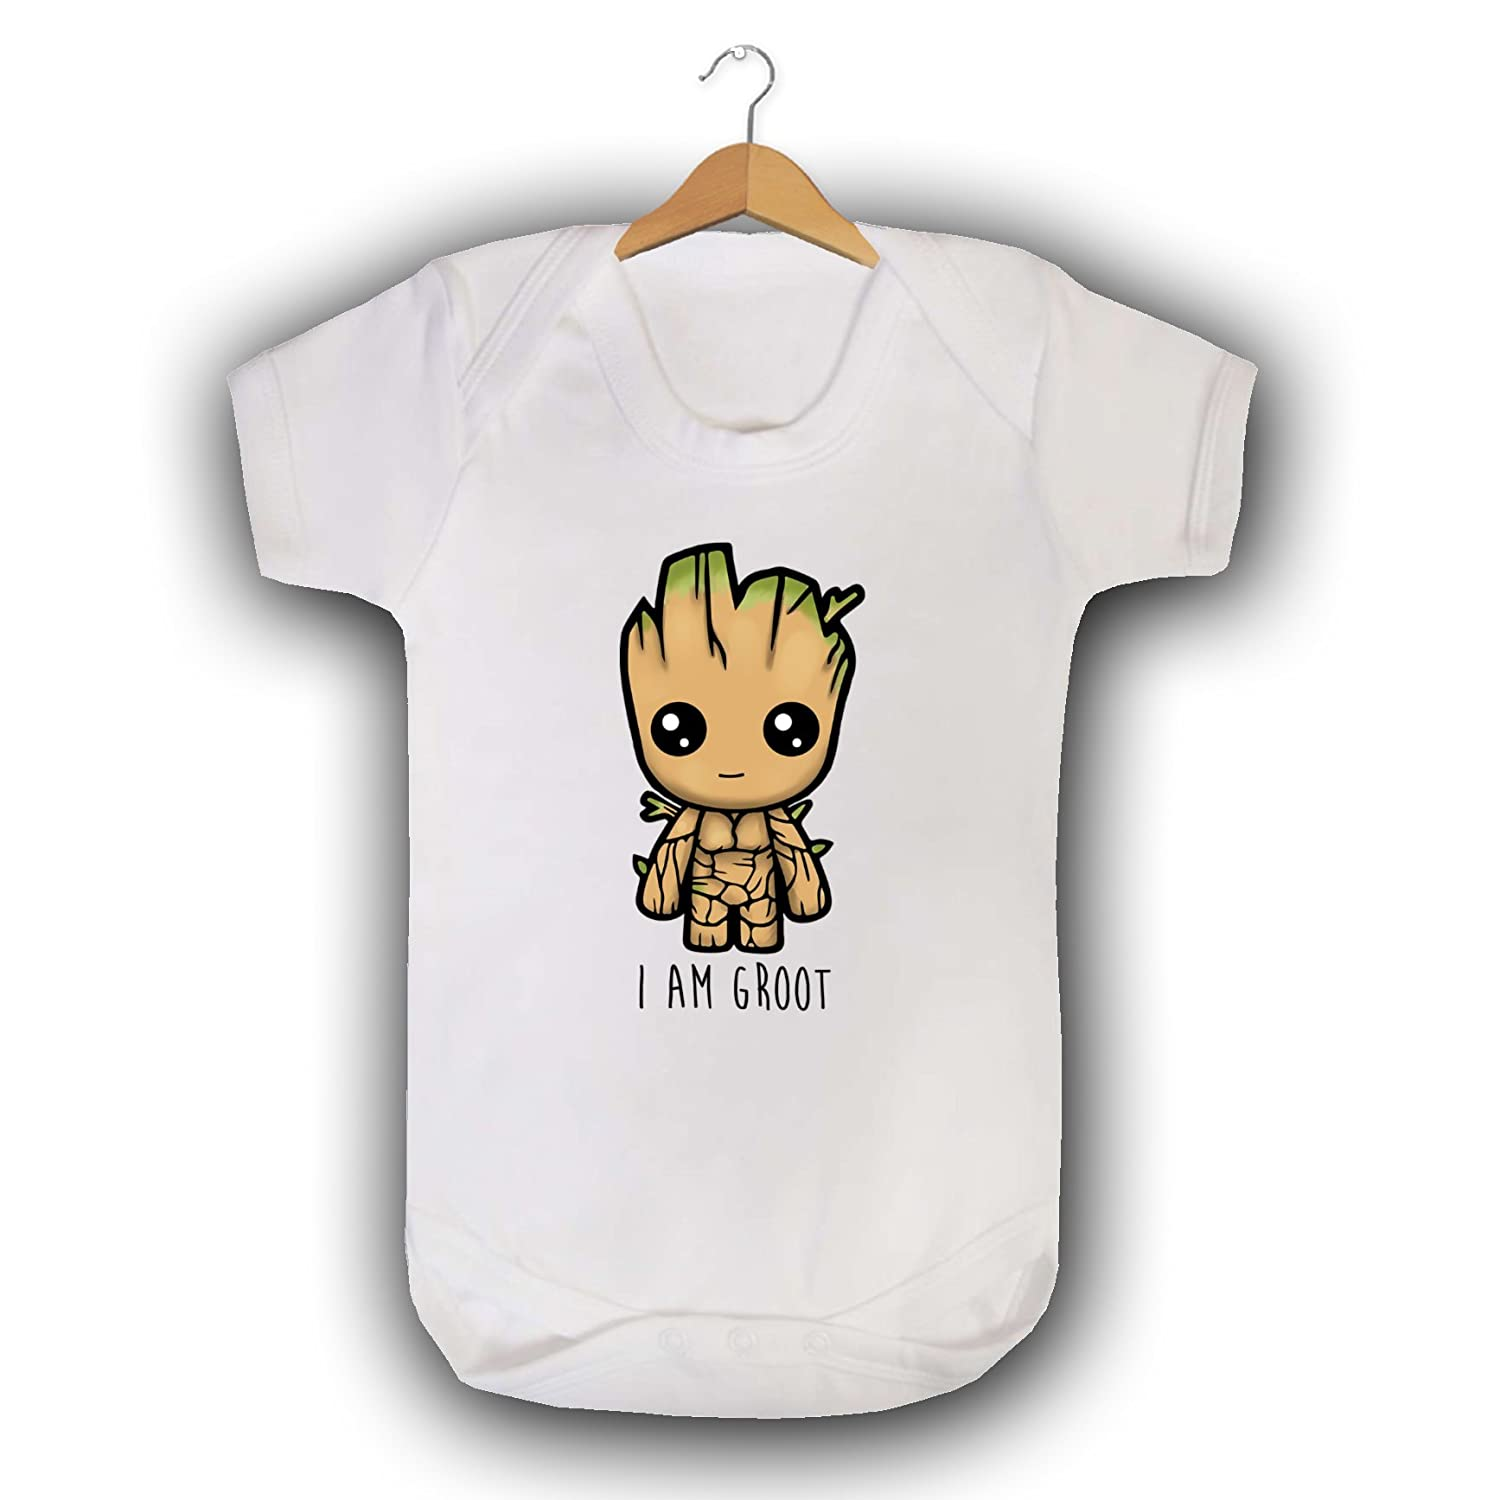 SMARTYPANTS I am Groot Babygrow Baby Vest Sleepsuit GOTG Guardians of The Galaxy Inspired Cute Funny Printed Baby wear